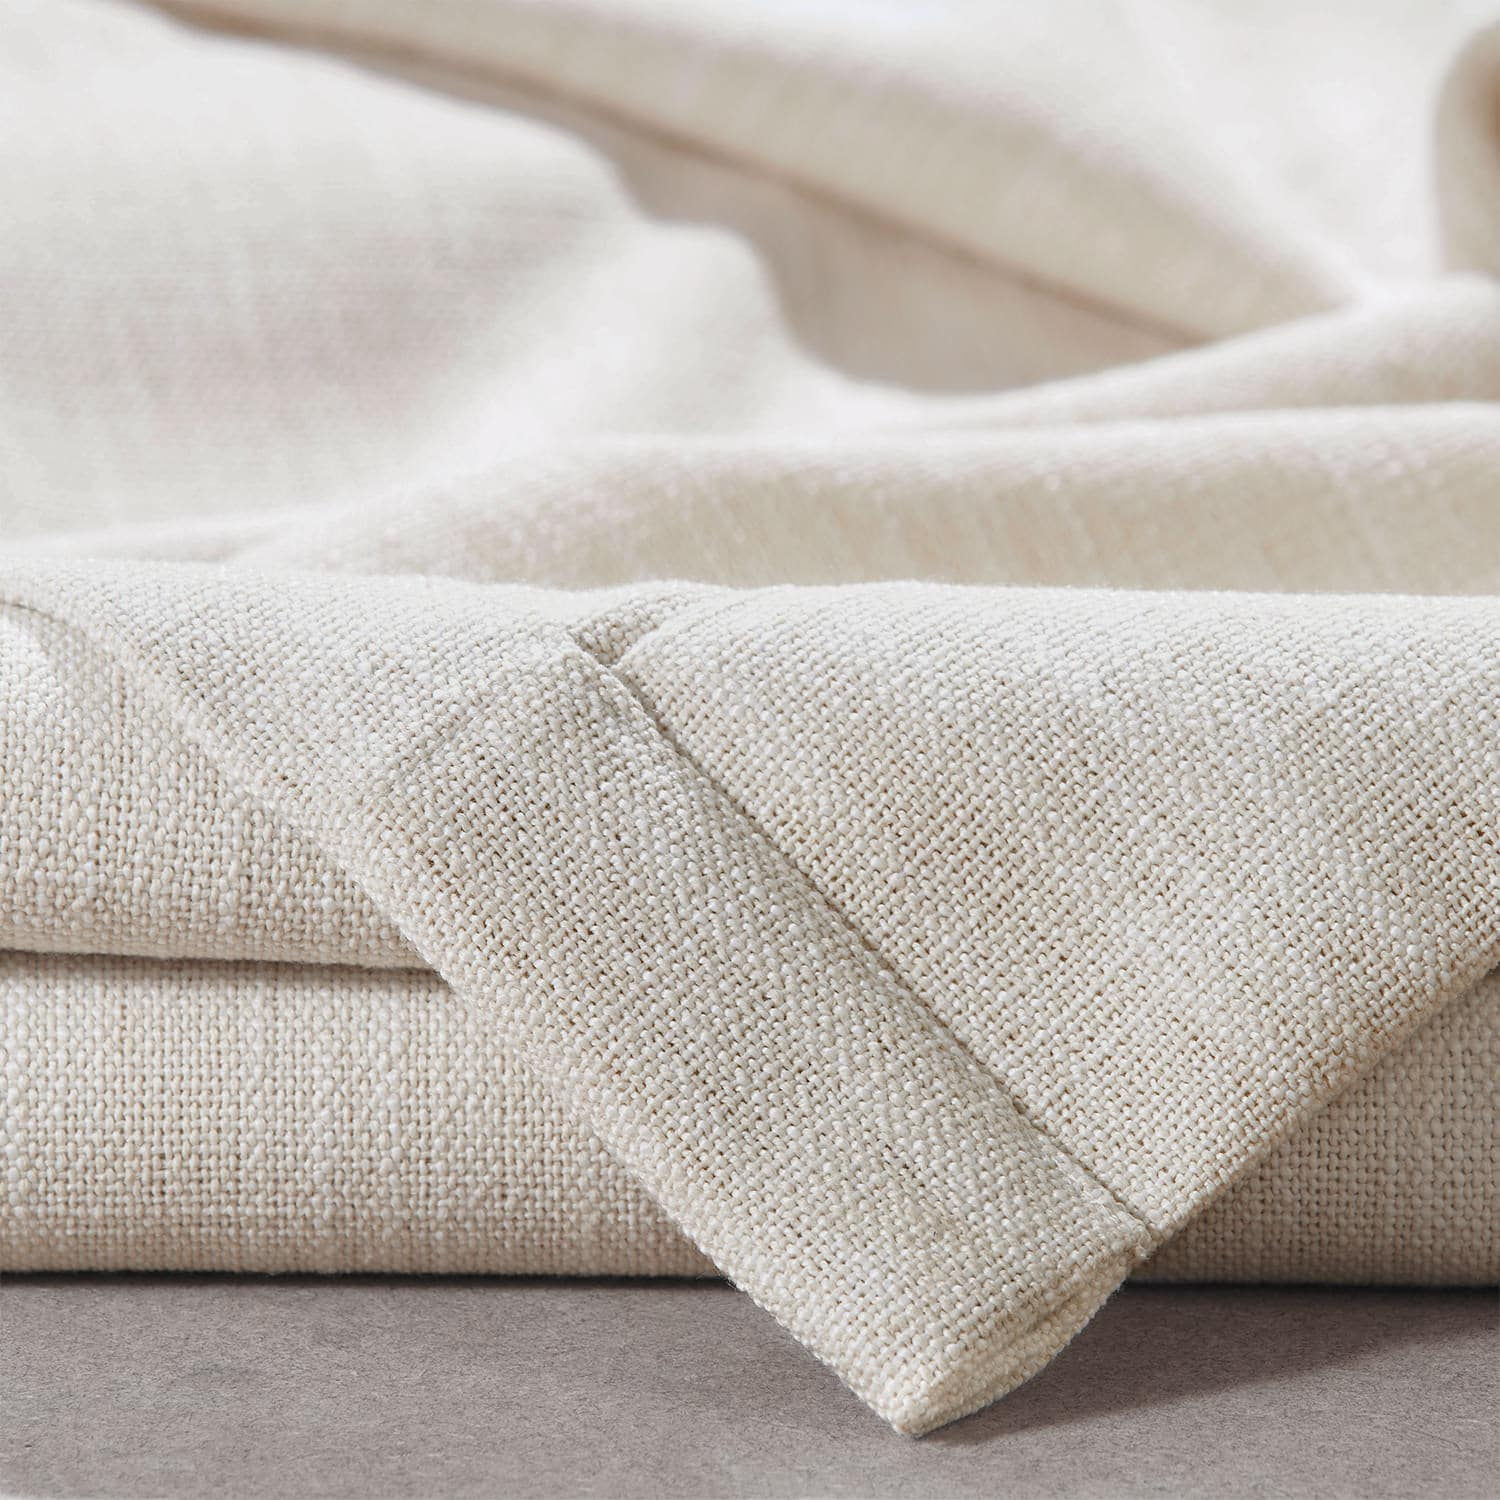 Country Cream Pebble Weave Faux Linen Swatch